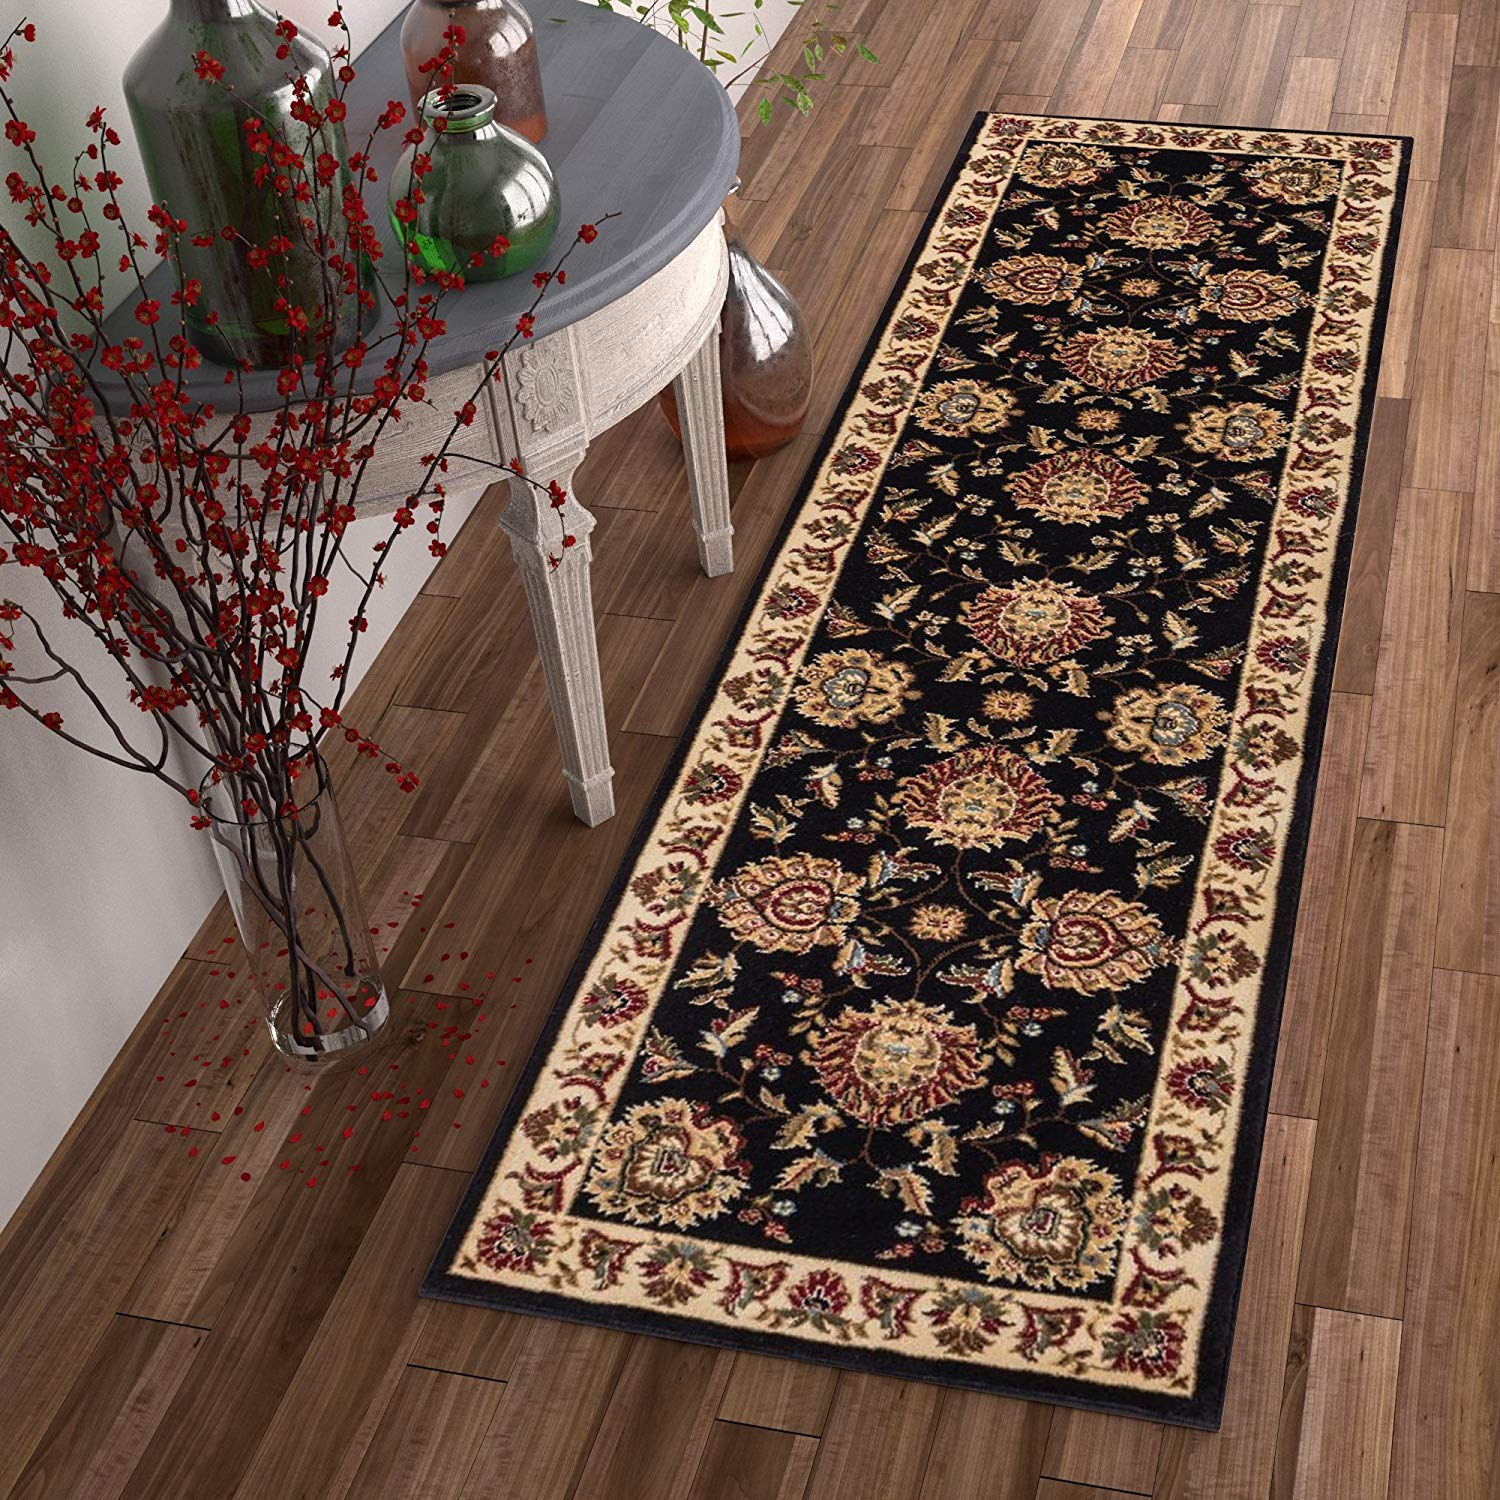 d16b6271b3b Get Quotations · 2 8 x 12  Black Beige Floral Pattern Runner Rug Rectangle